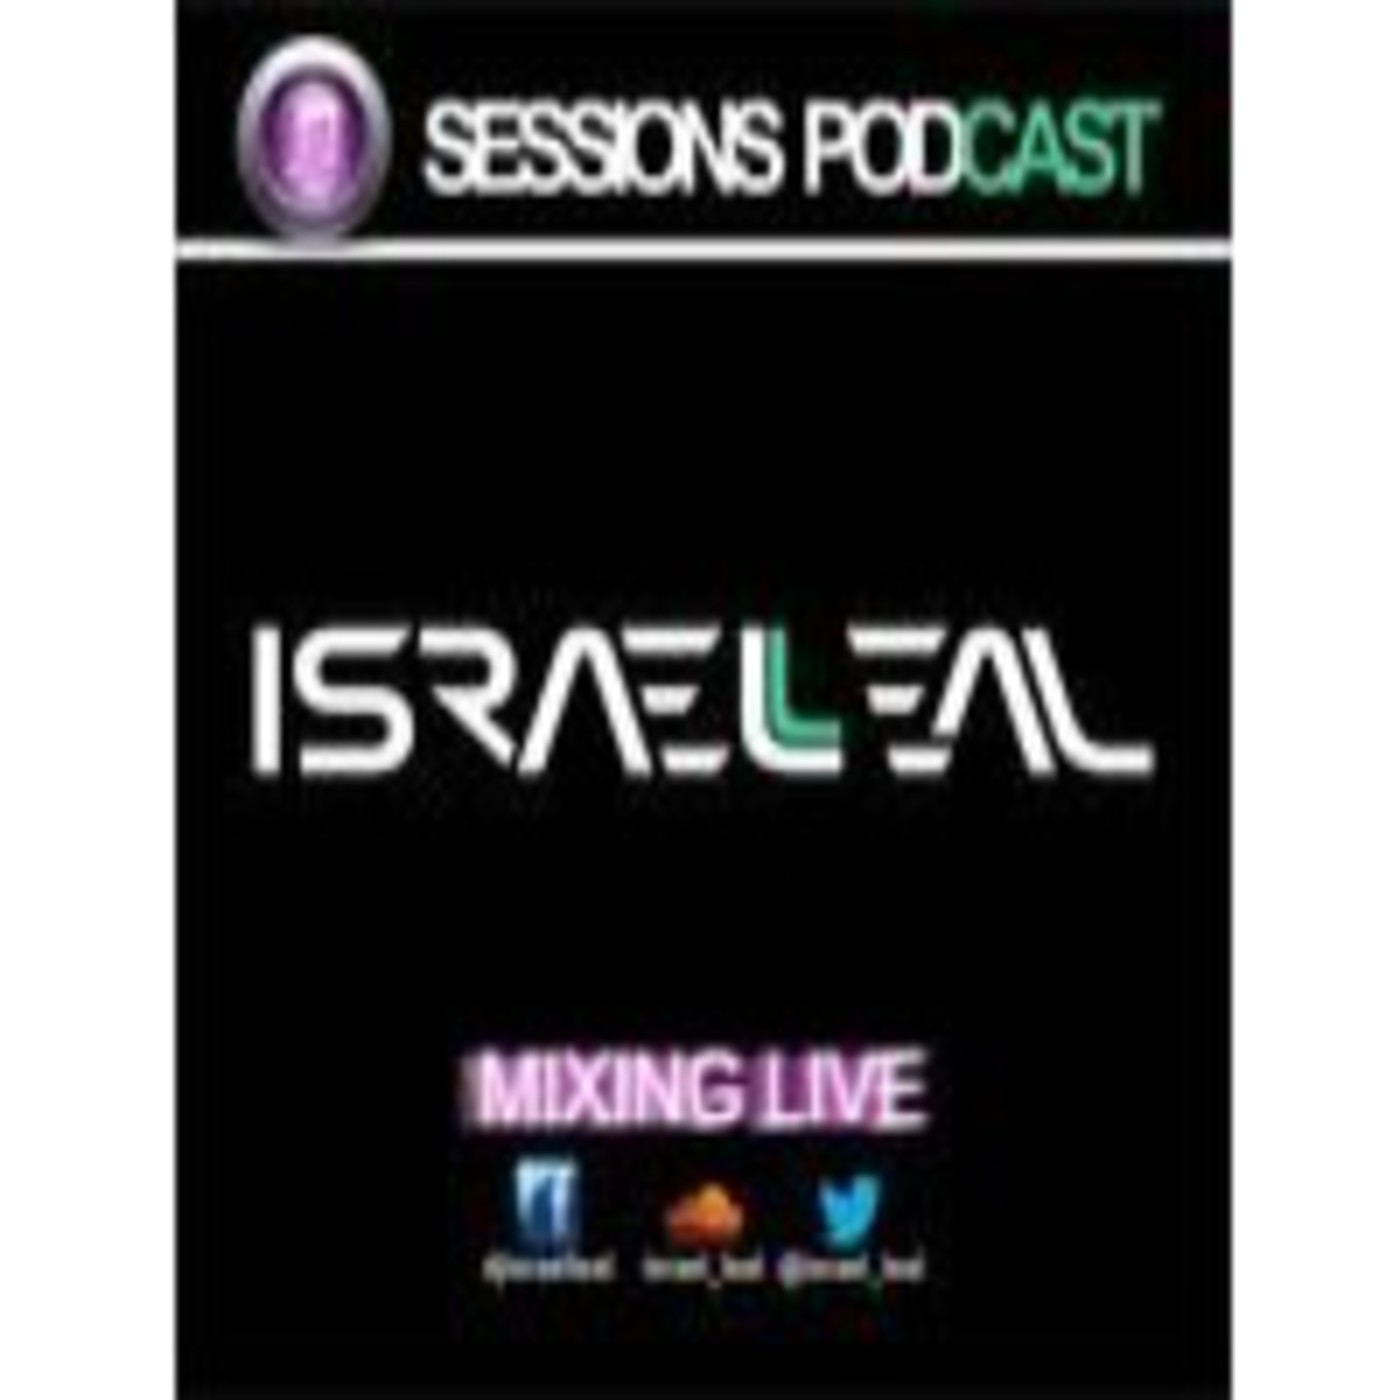 <![CDATA[Israel Leal  Sessions Podcast ]]>